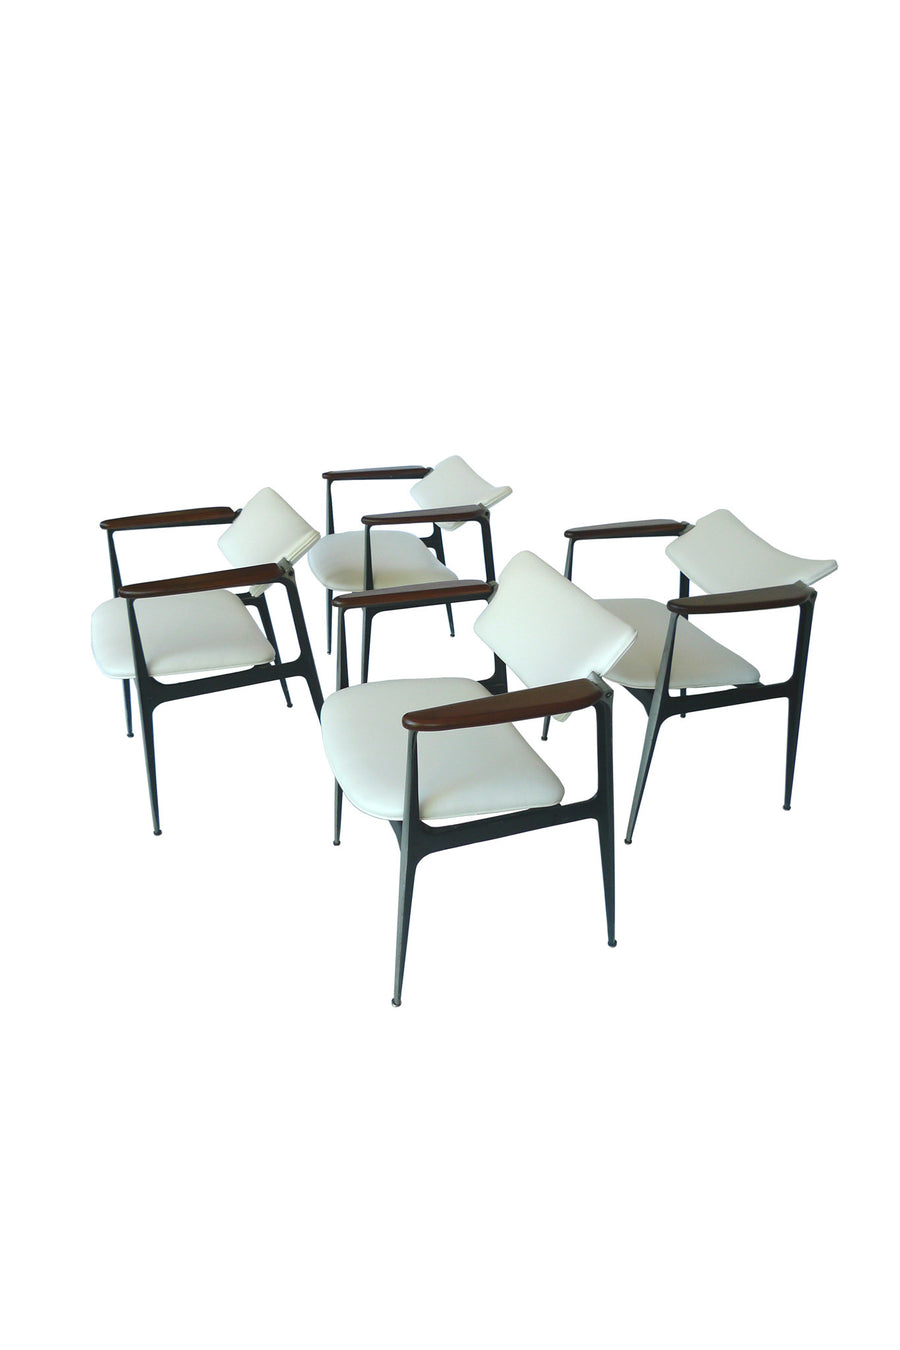 Shelby Williams Gazelle Chairs - a Set of 4